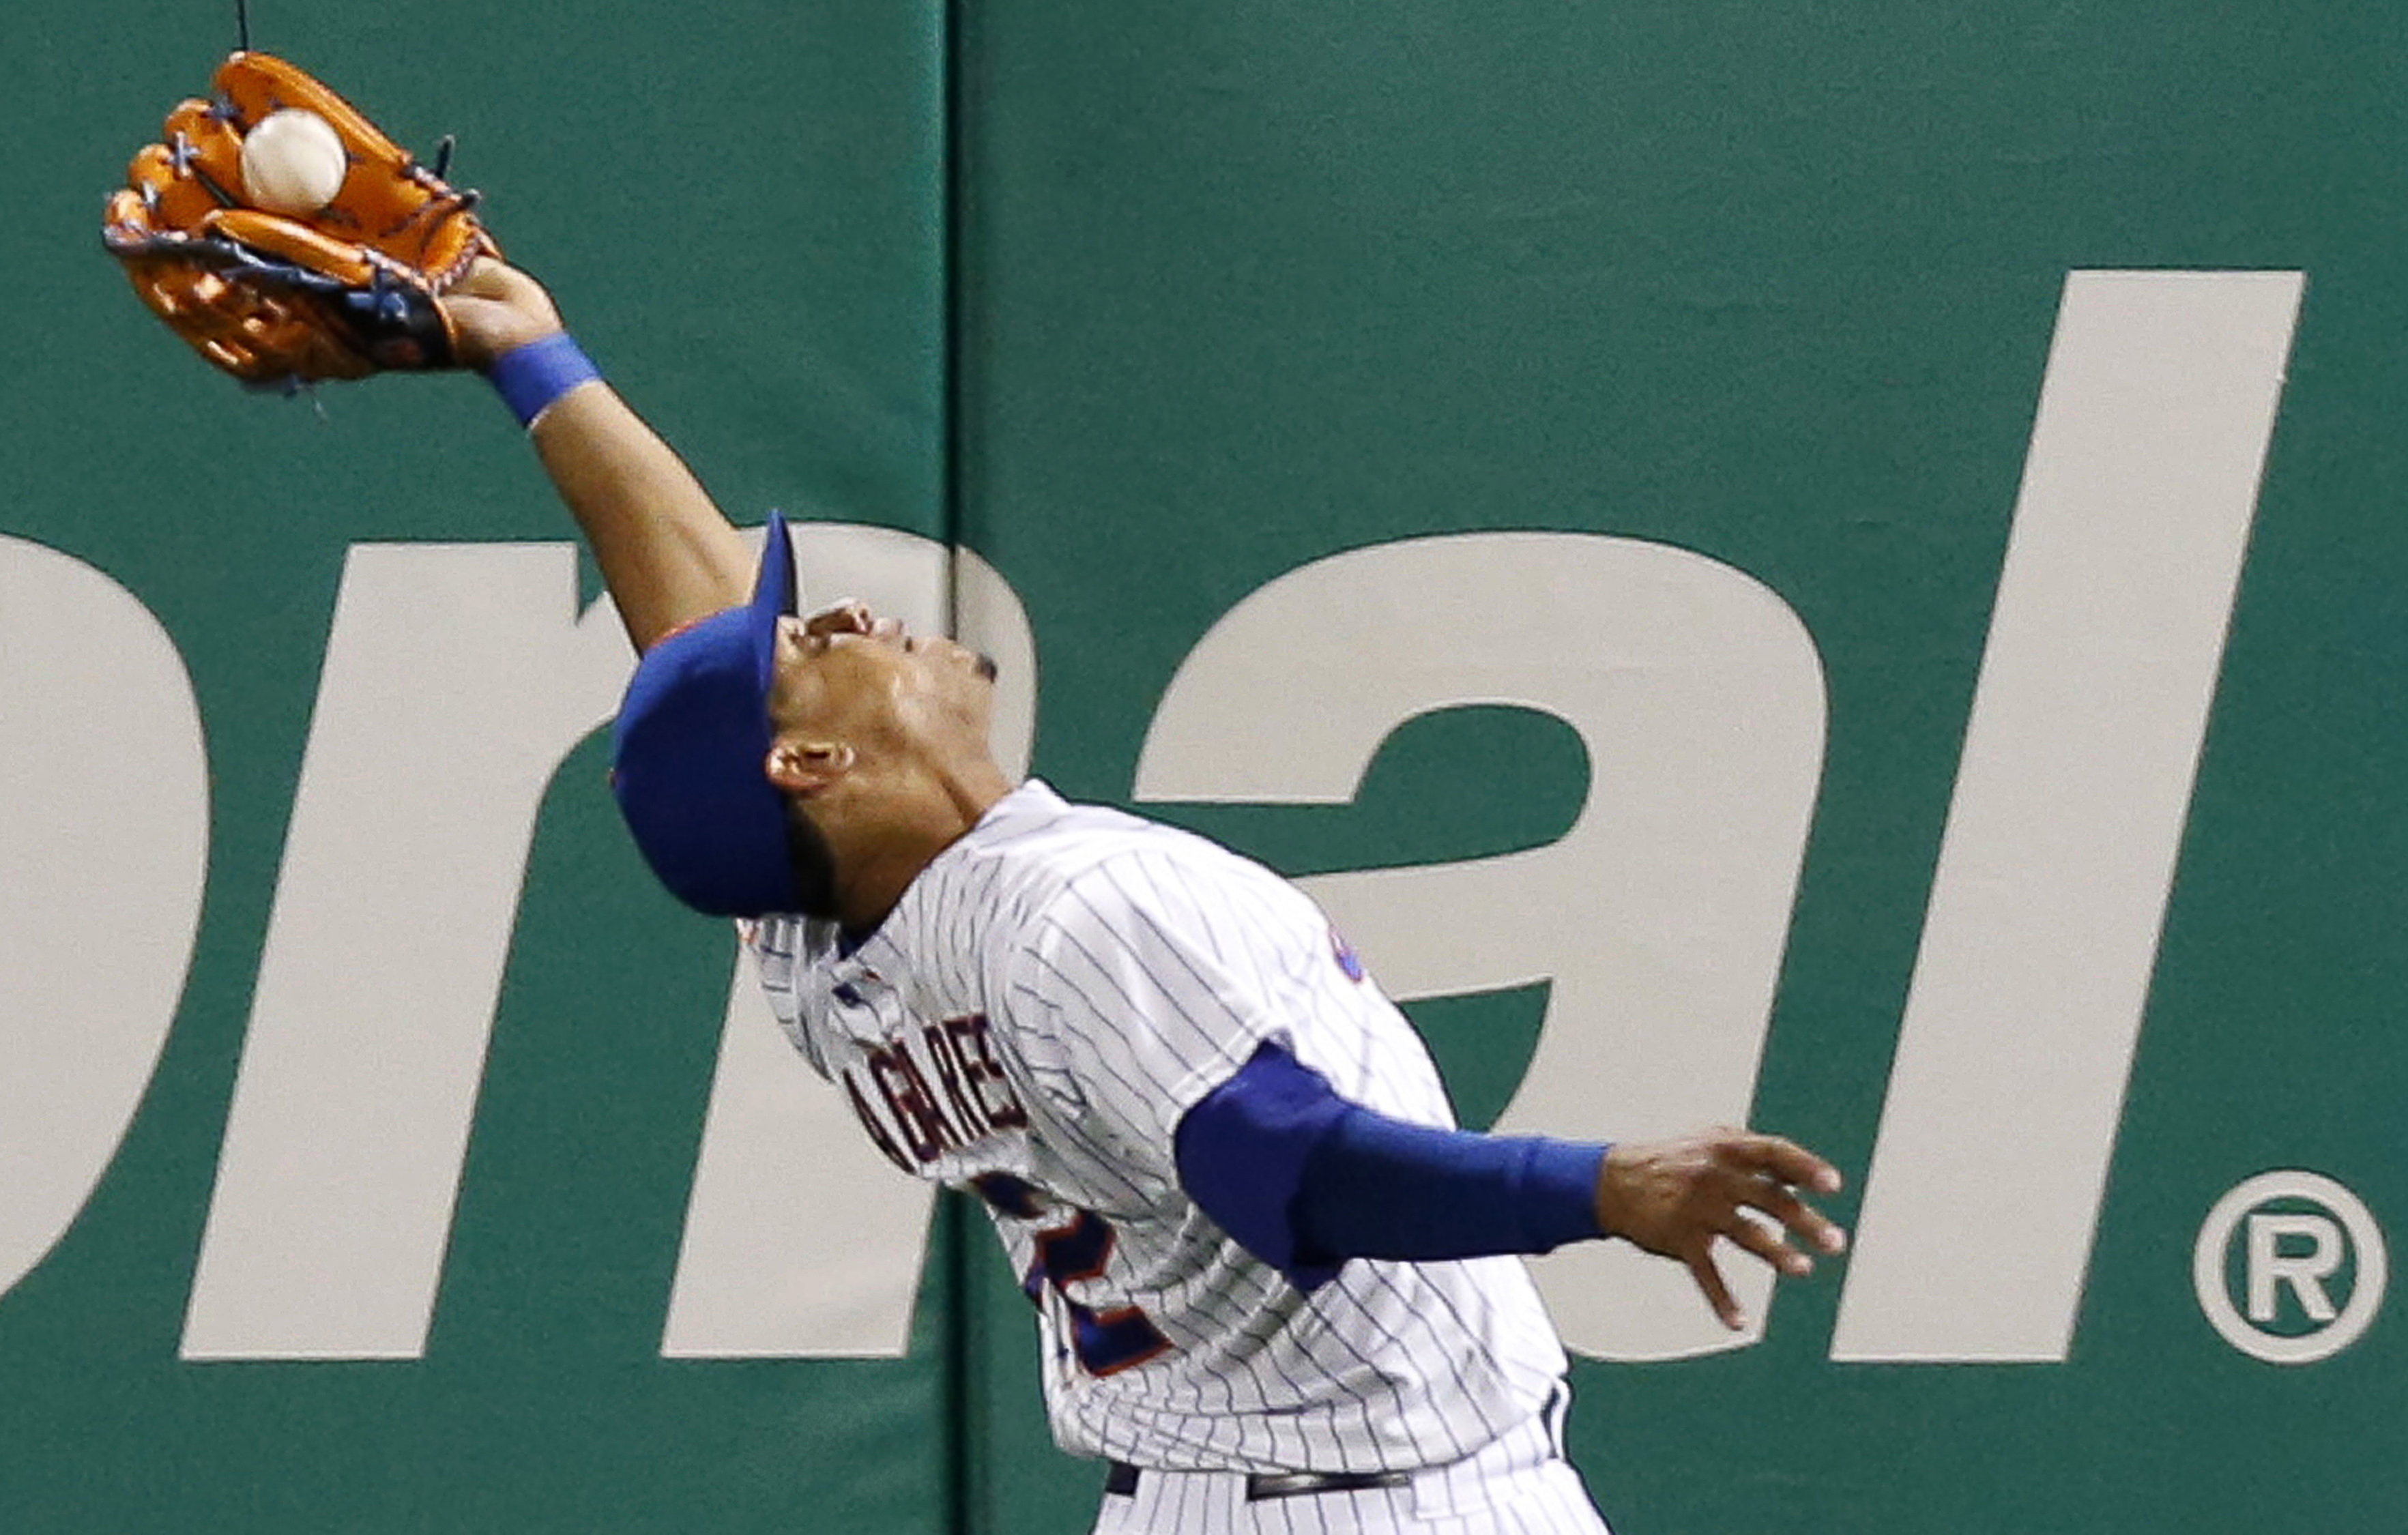 New York Mets center fielder Juan Lagares (12) makes a seventh-inning, over-the-shoulder catch on a flyout by Atlanta Braves Jace Peterson in a baseball game in New York, Wednesday, April 22, 2015. (AP Photo/Kathy Willens)